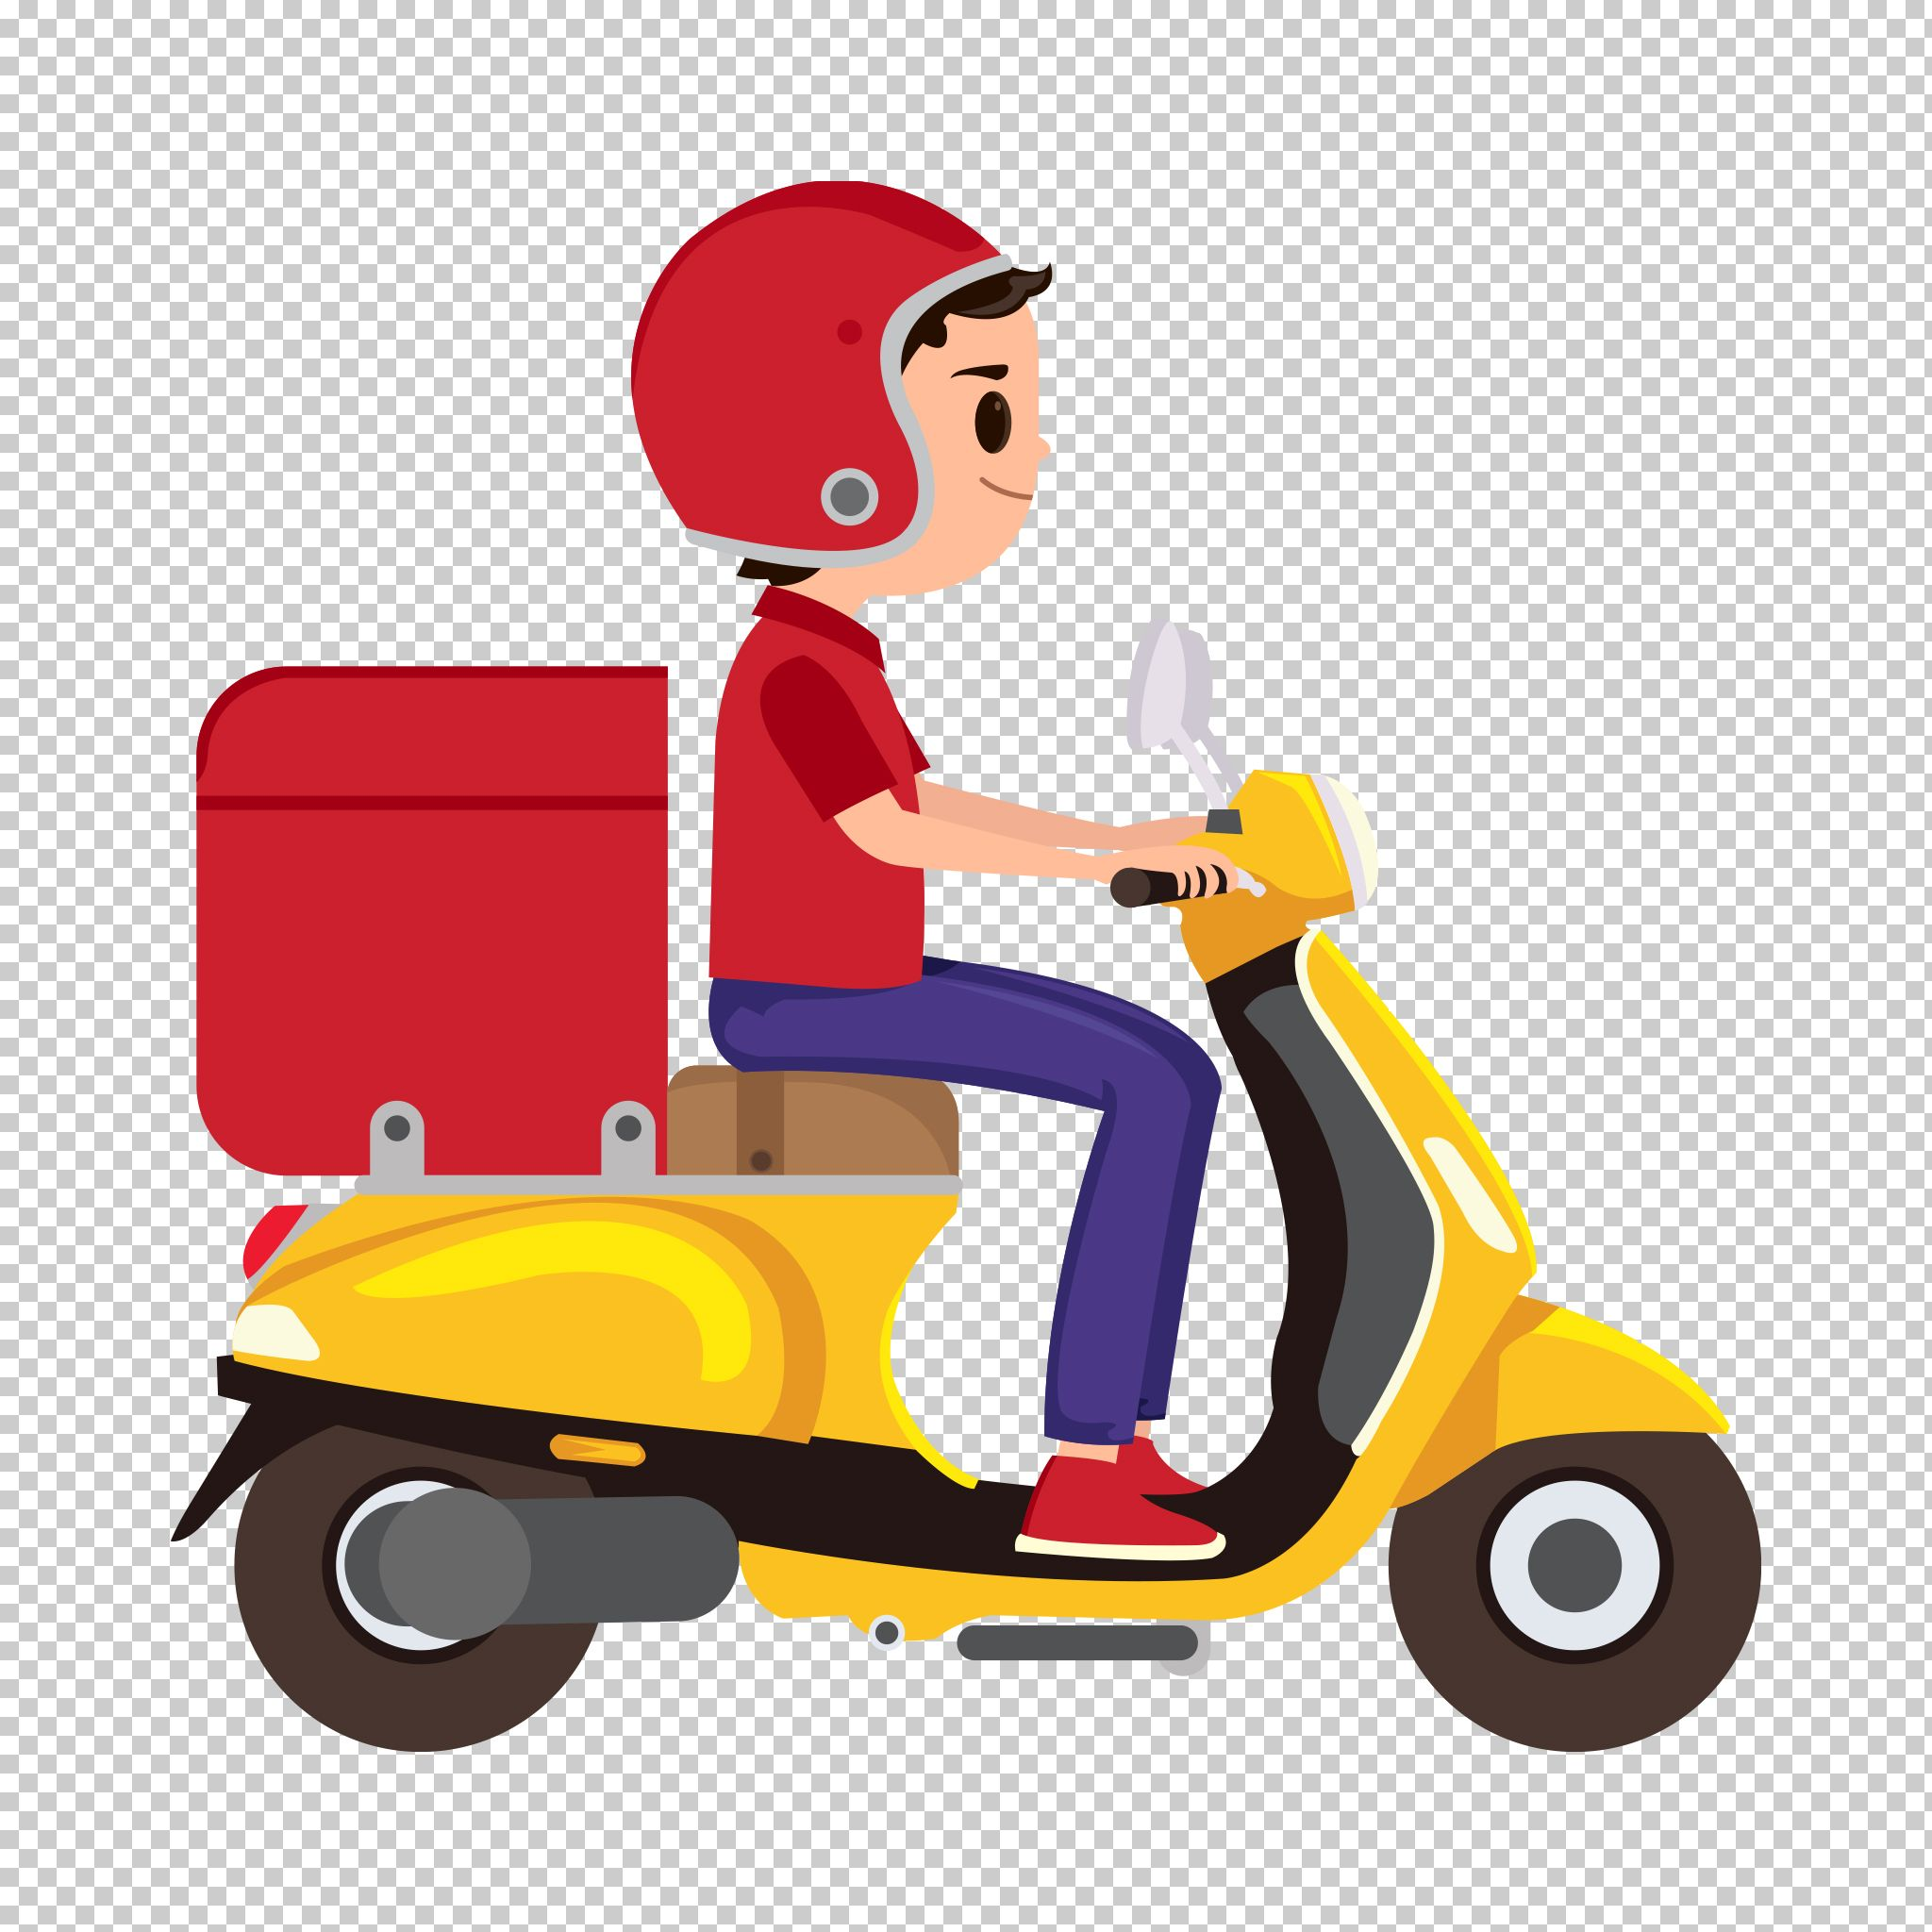 Delivery Boy Clipart Png Free Download In 2020 Sushi Delivery Food Delivery Logo Pizza Delivery Boy